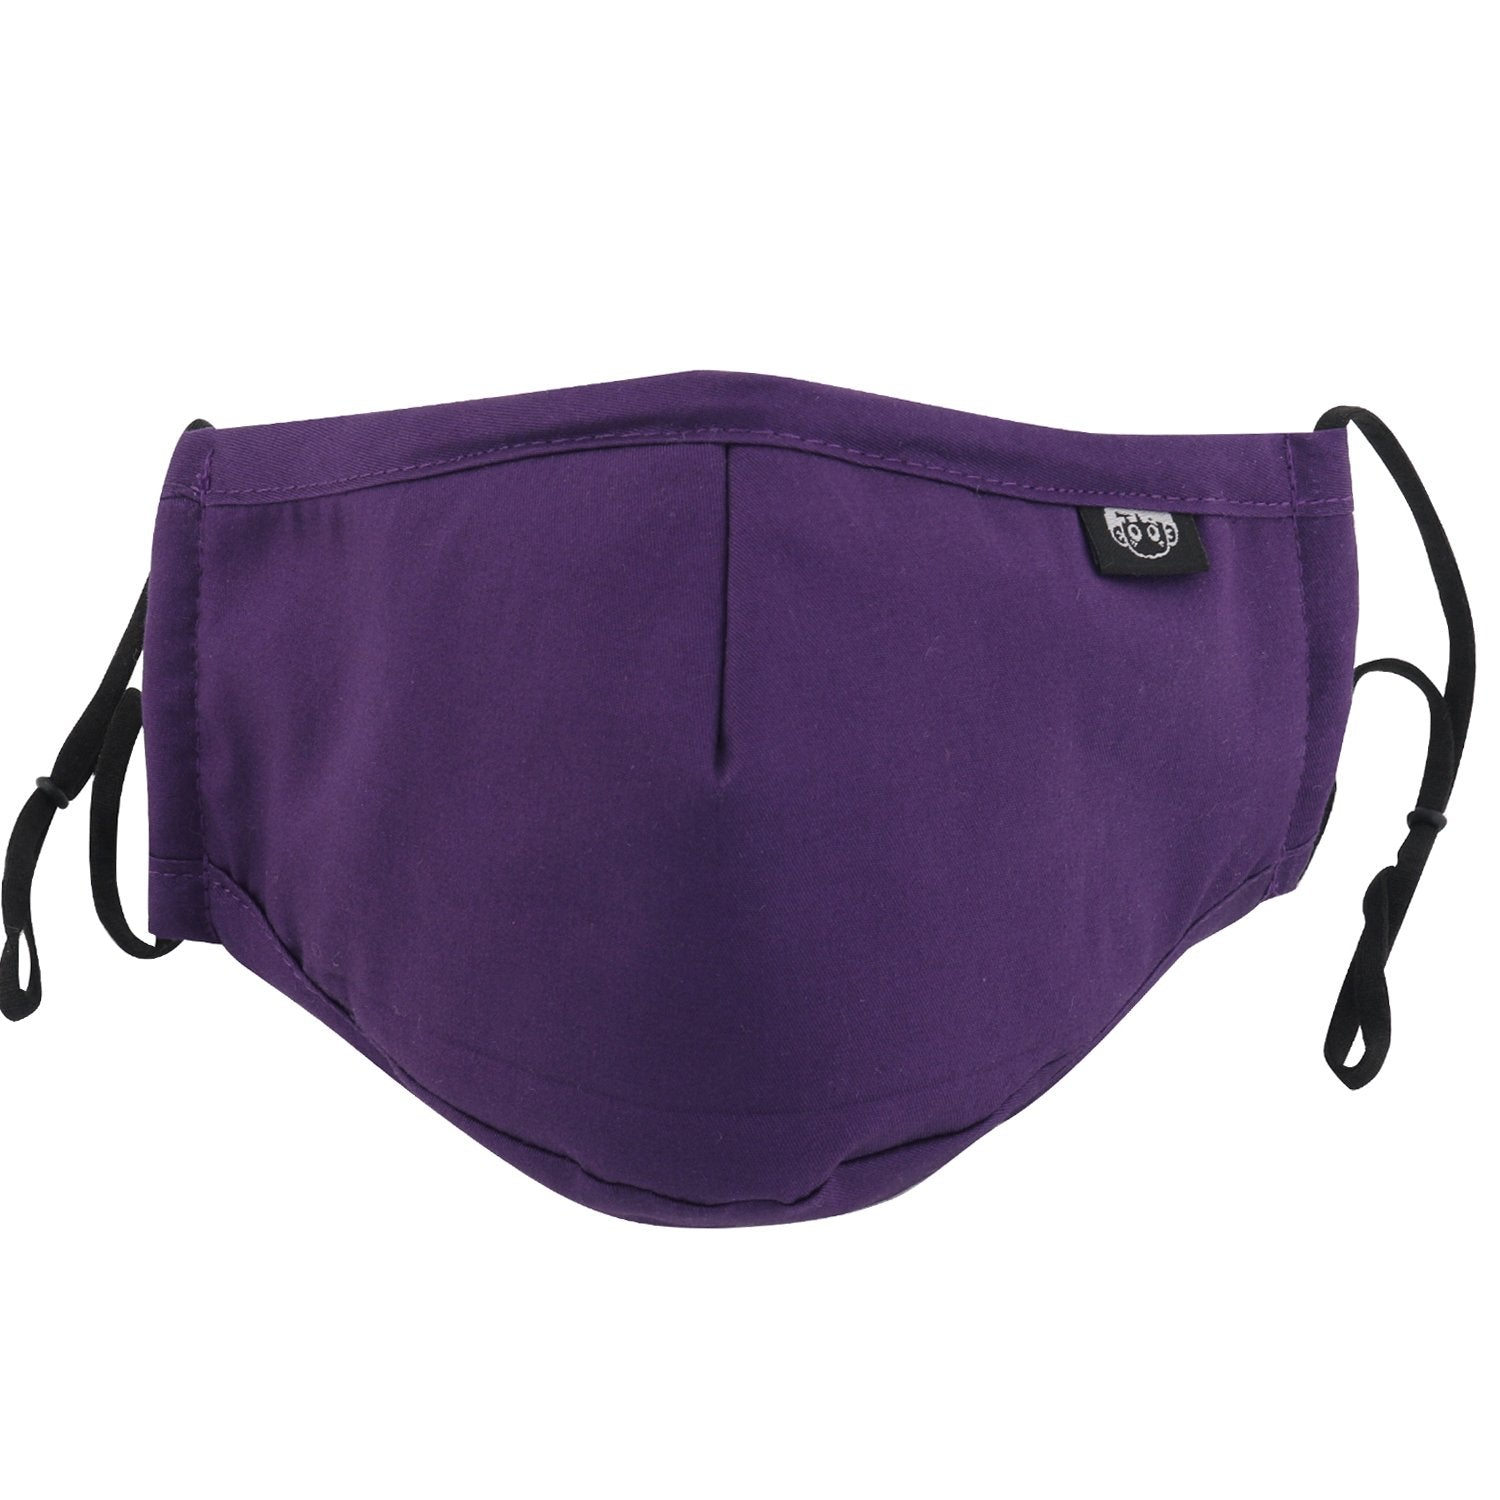 GUOER Mask Can Be Washed Reusable Mask One Size Multiple Colors (Purple)